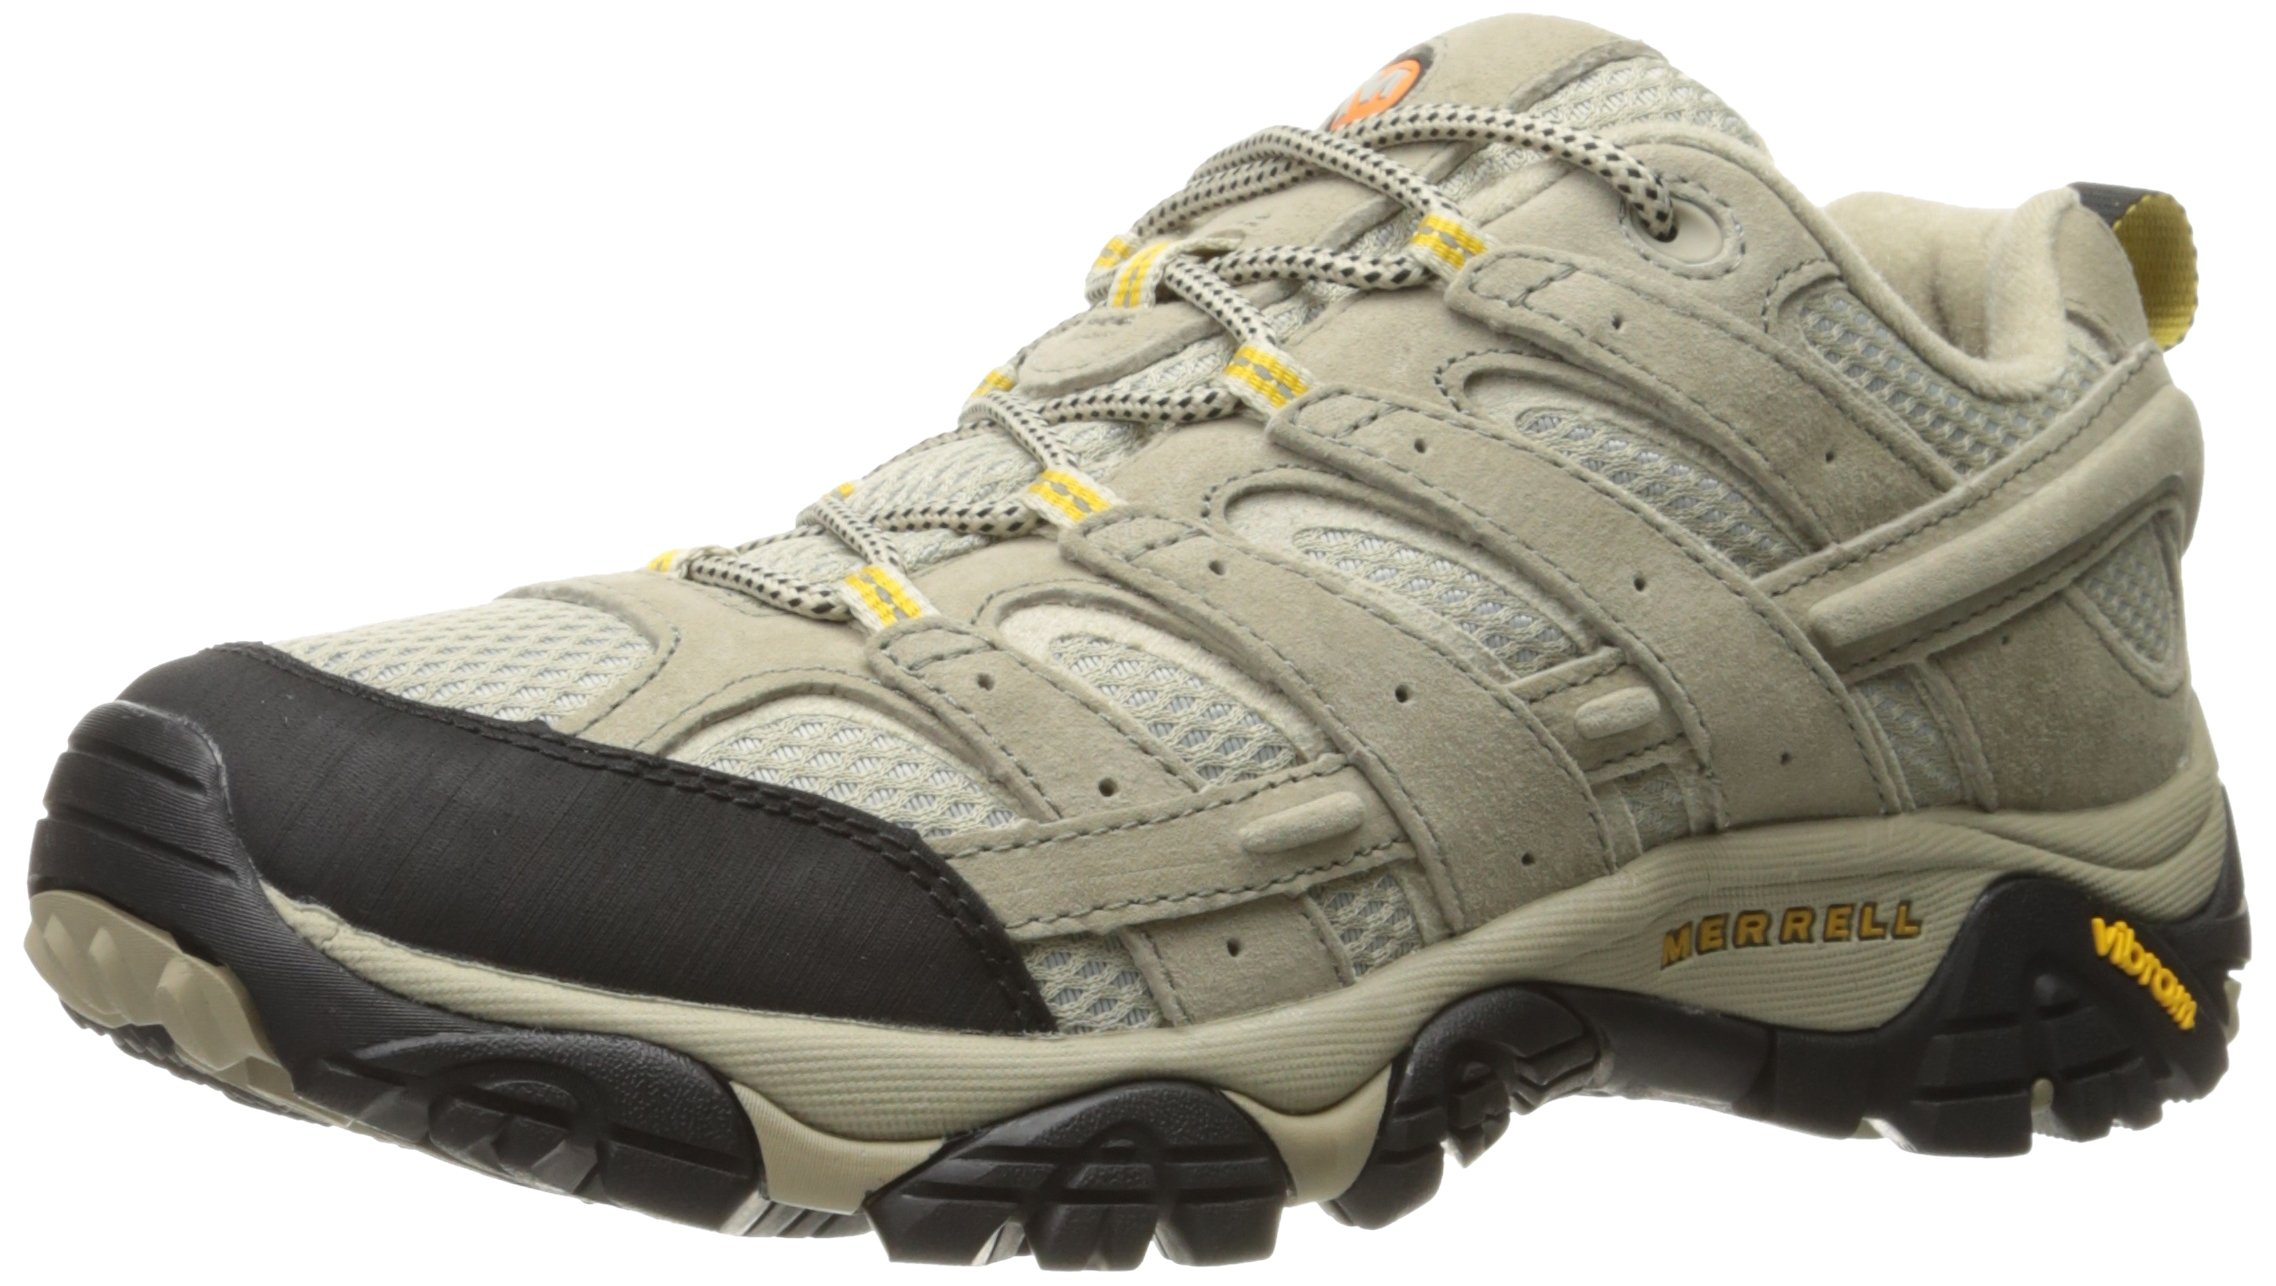 Merrell Women's Moab 2 Vent Hiking Shoe, Taupe, 9.5 W US